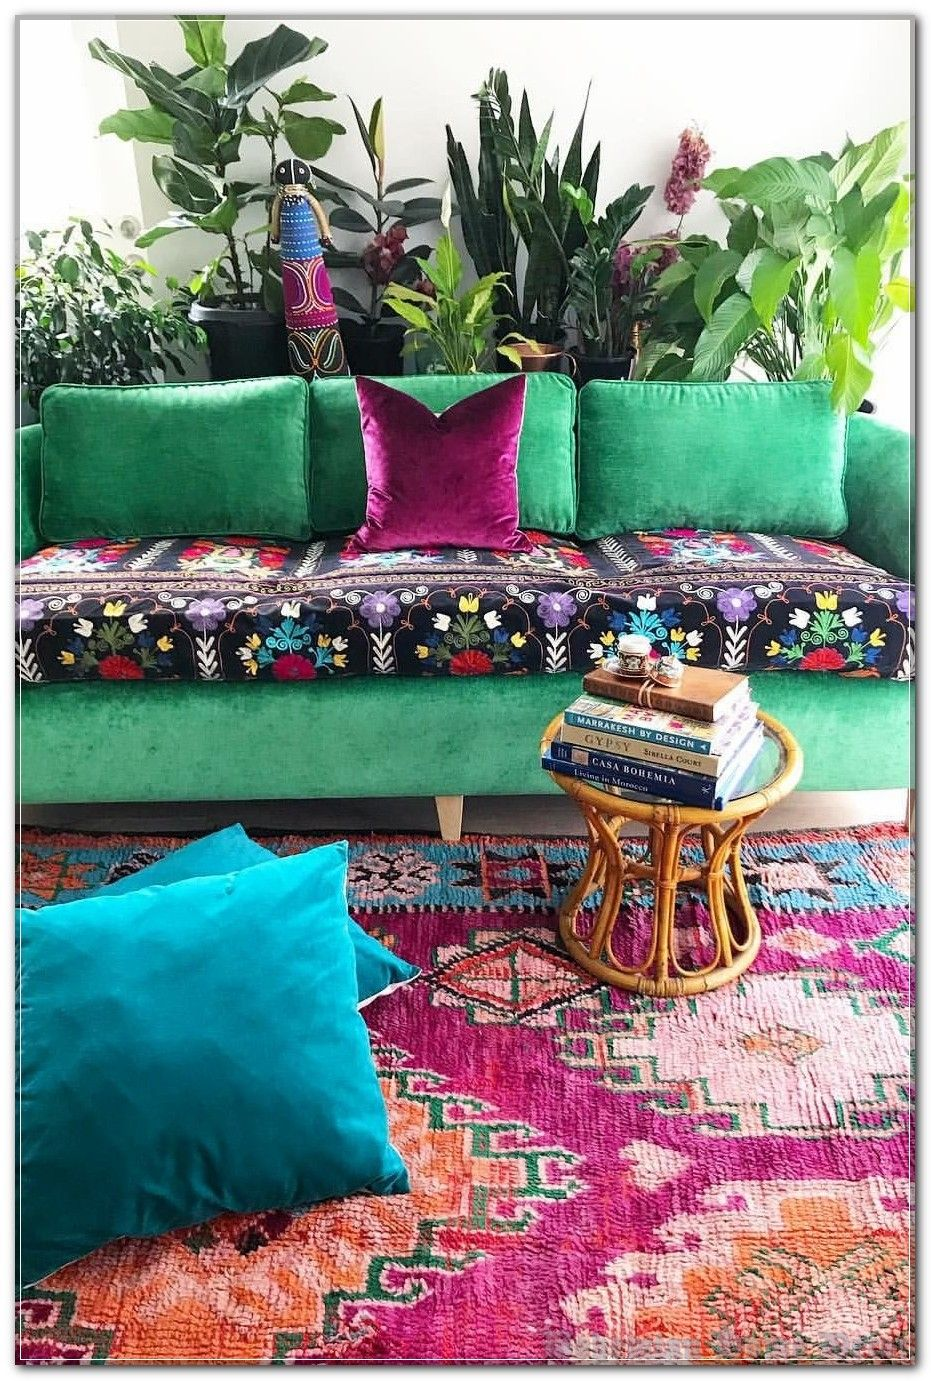 How To Spread The Word About Your Bohemian Home Decor